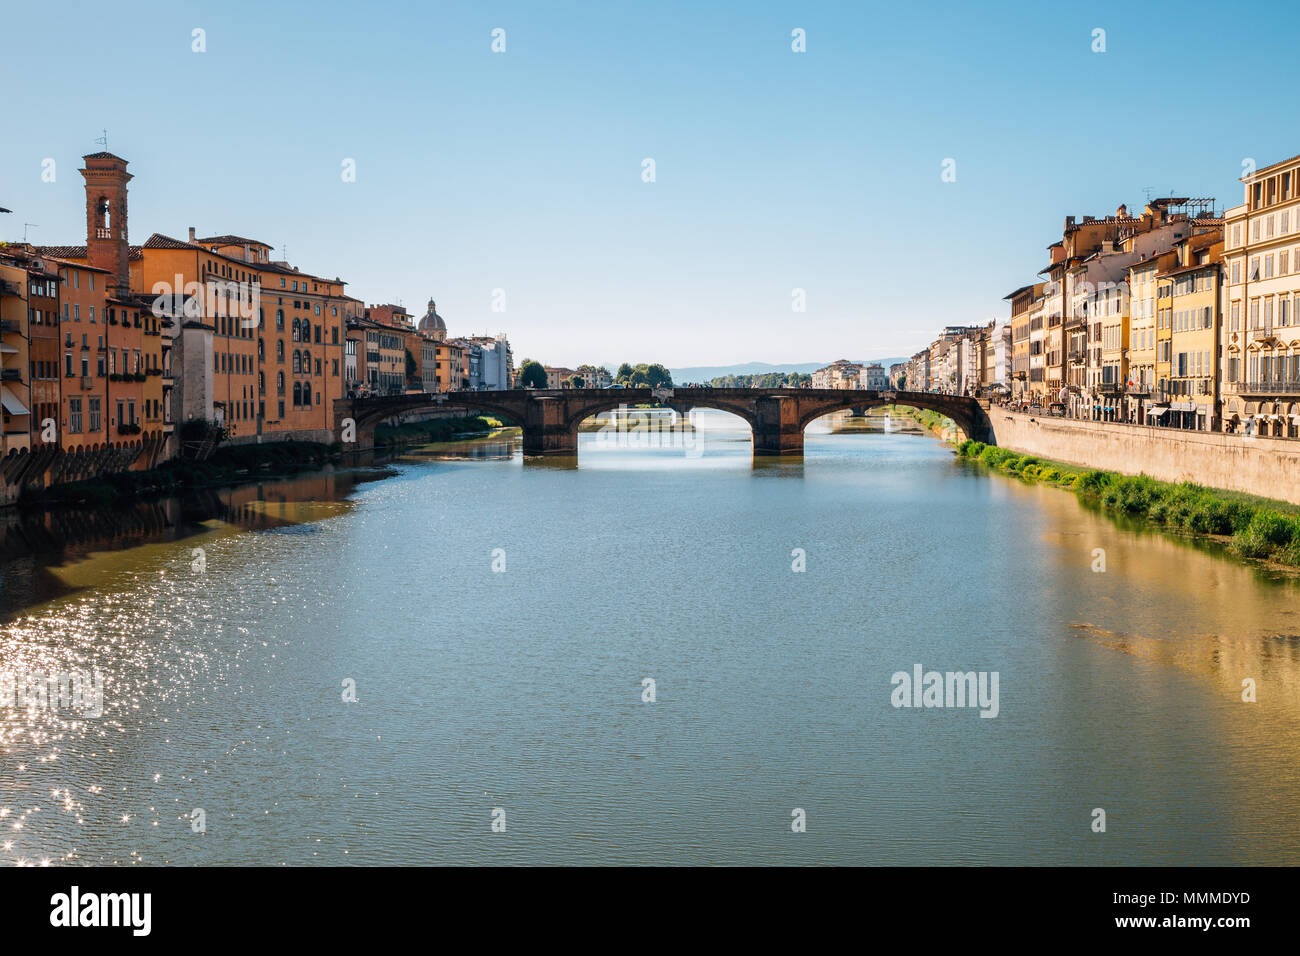 European buildings and Arno river in Florence, Italy - Stock Image